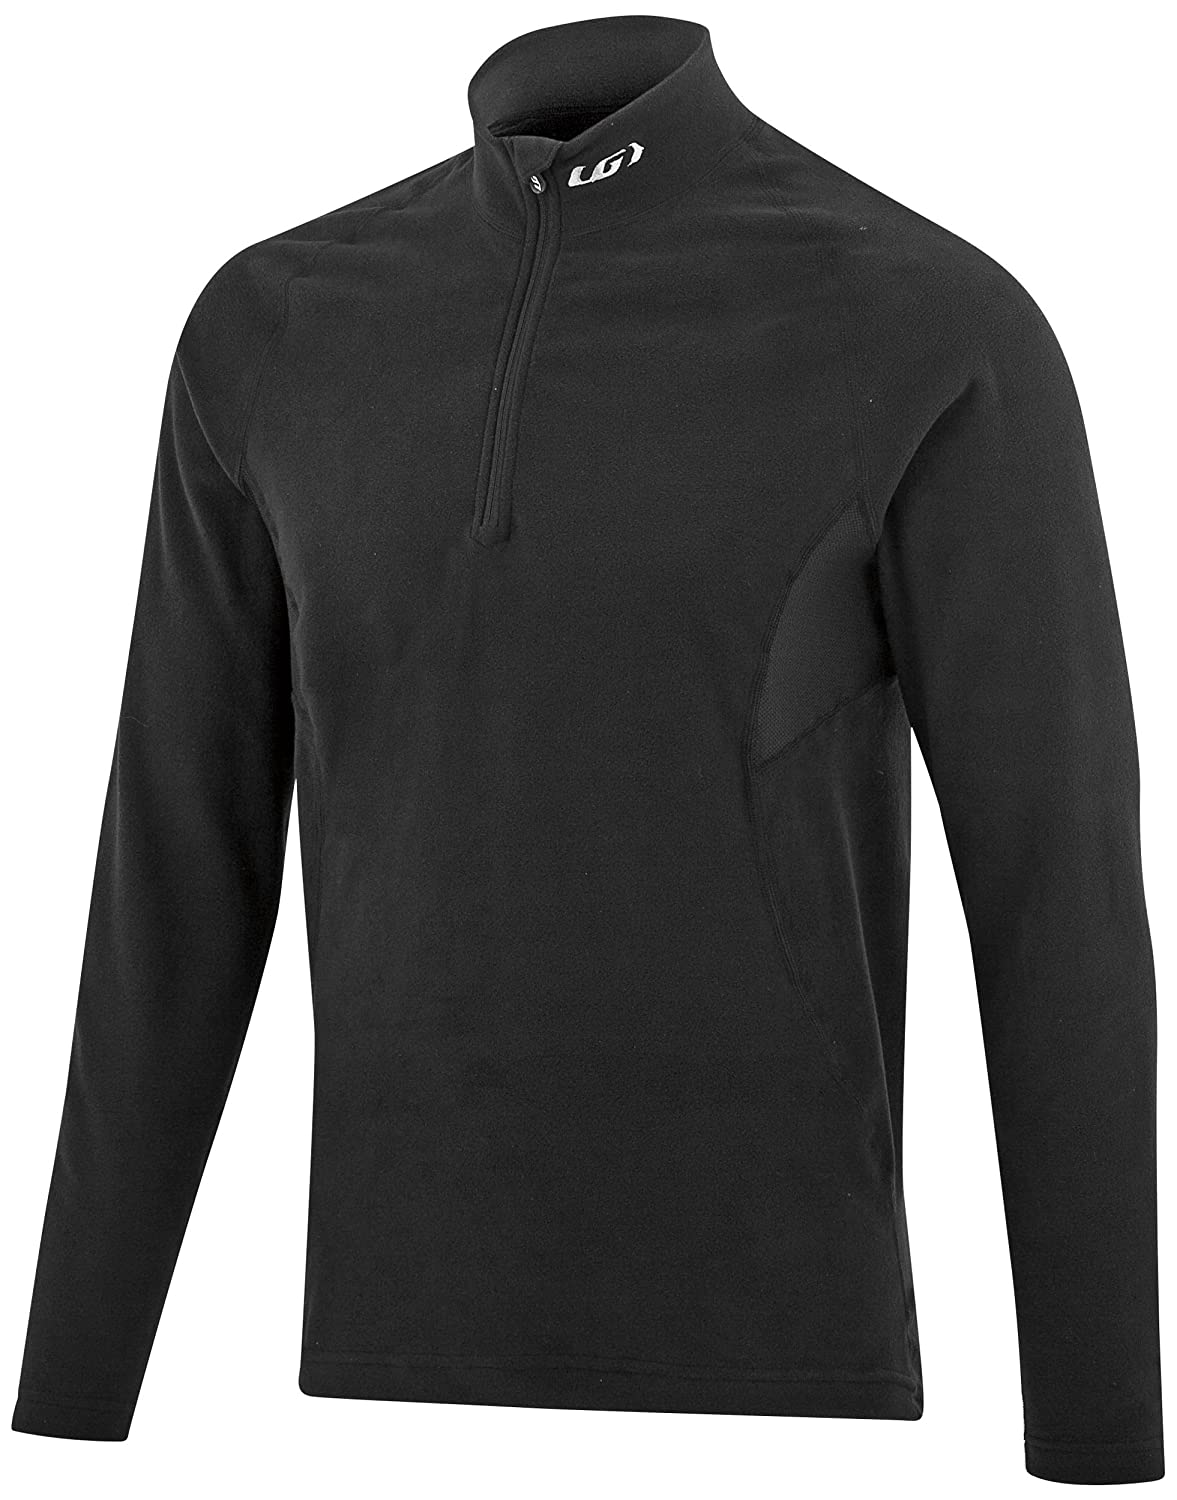 Louis Garneau Herren 4000 Zip Top